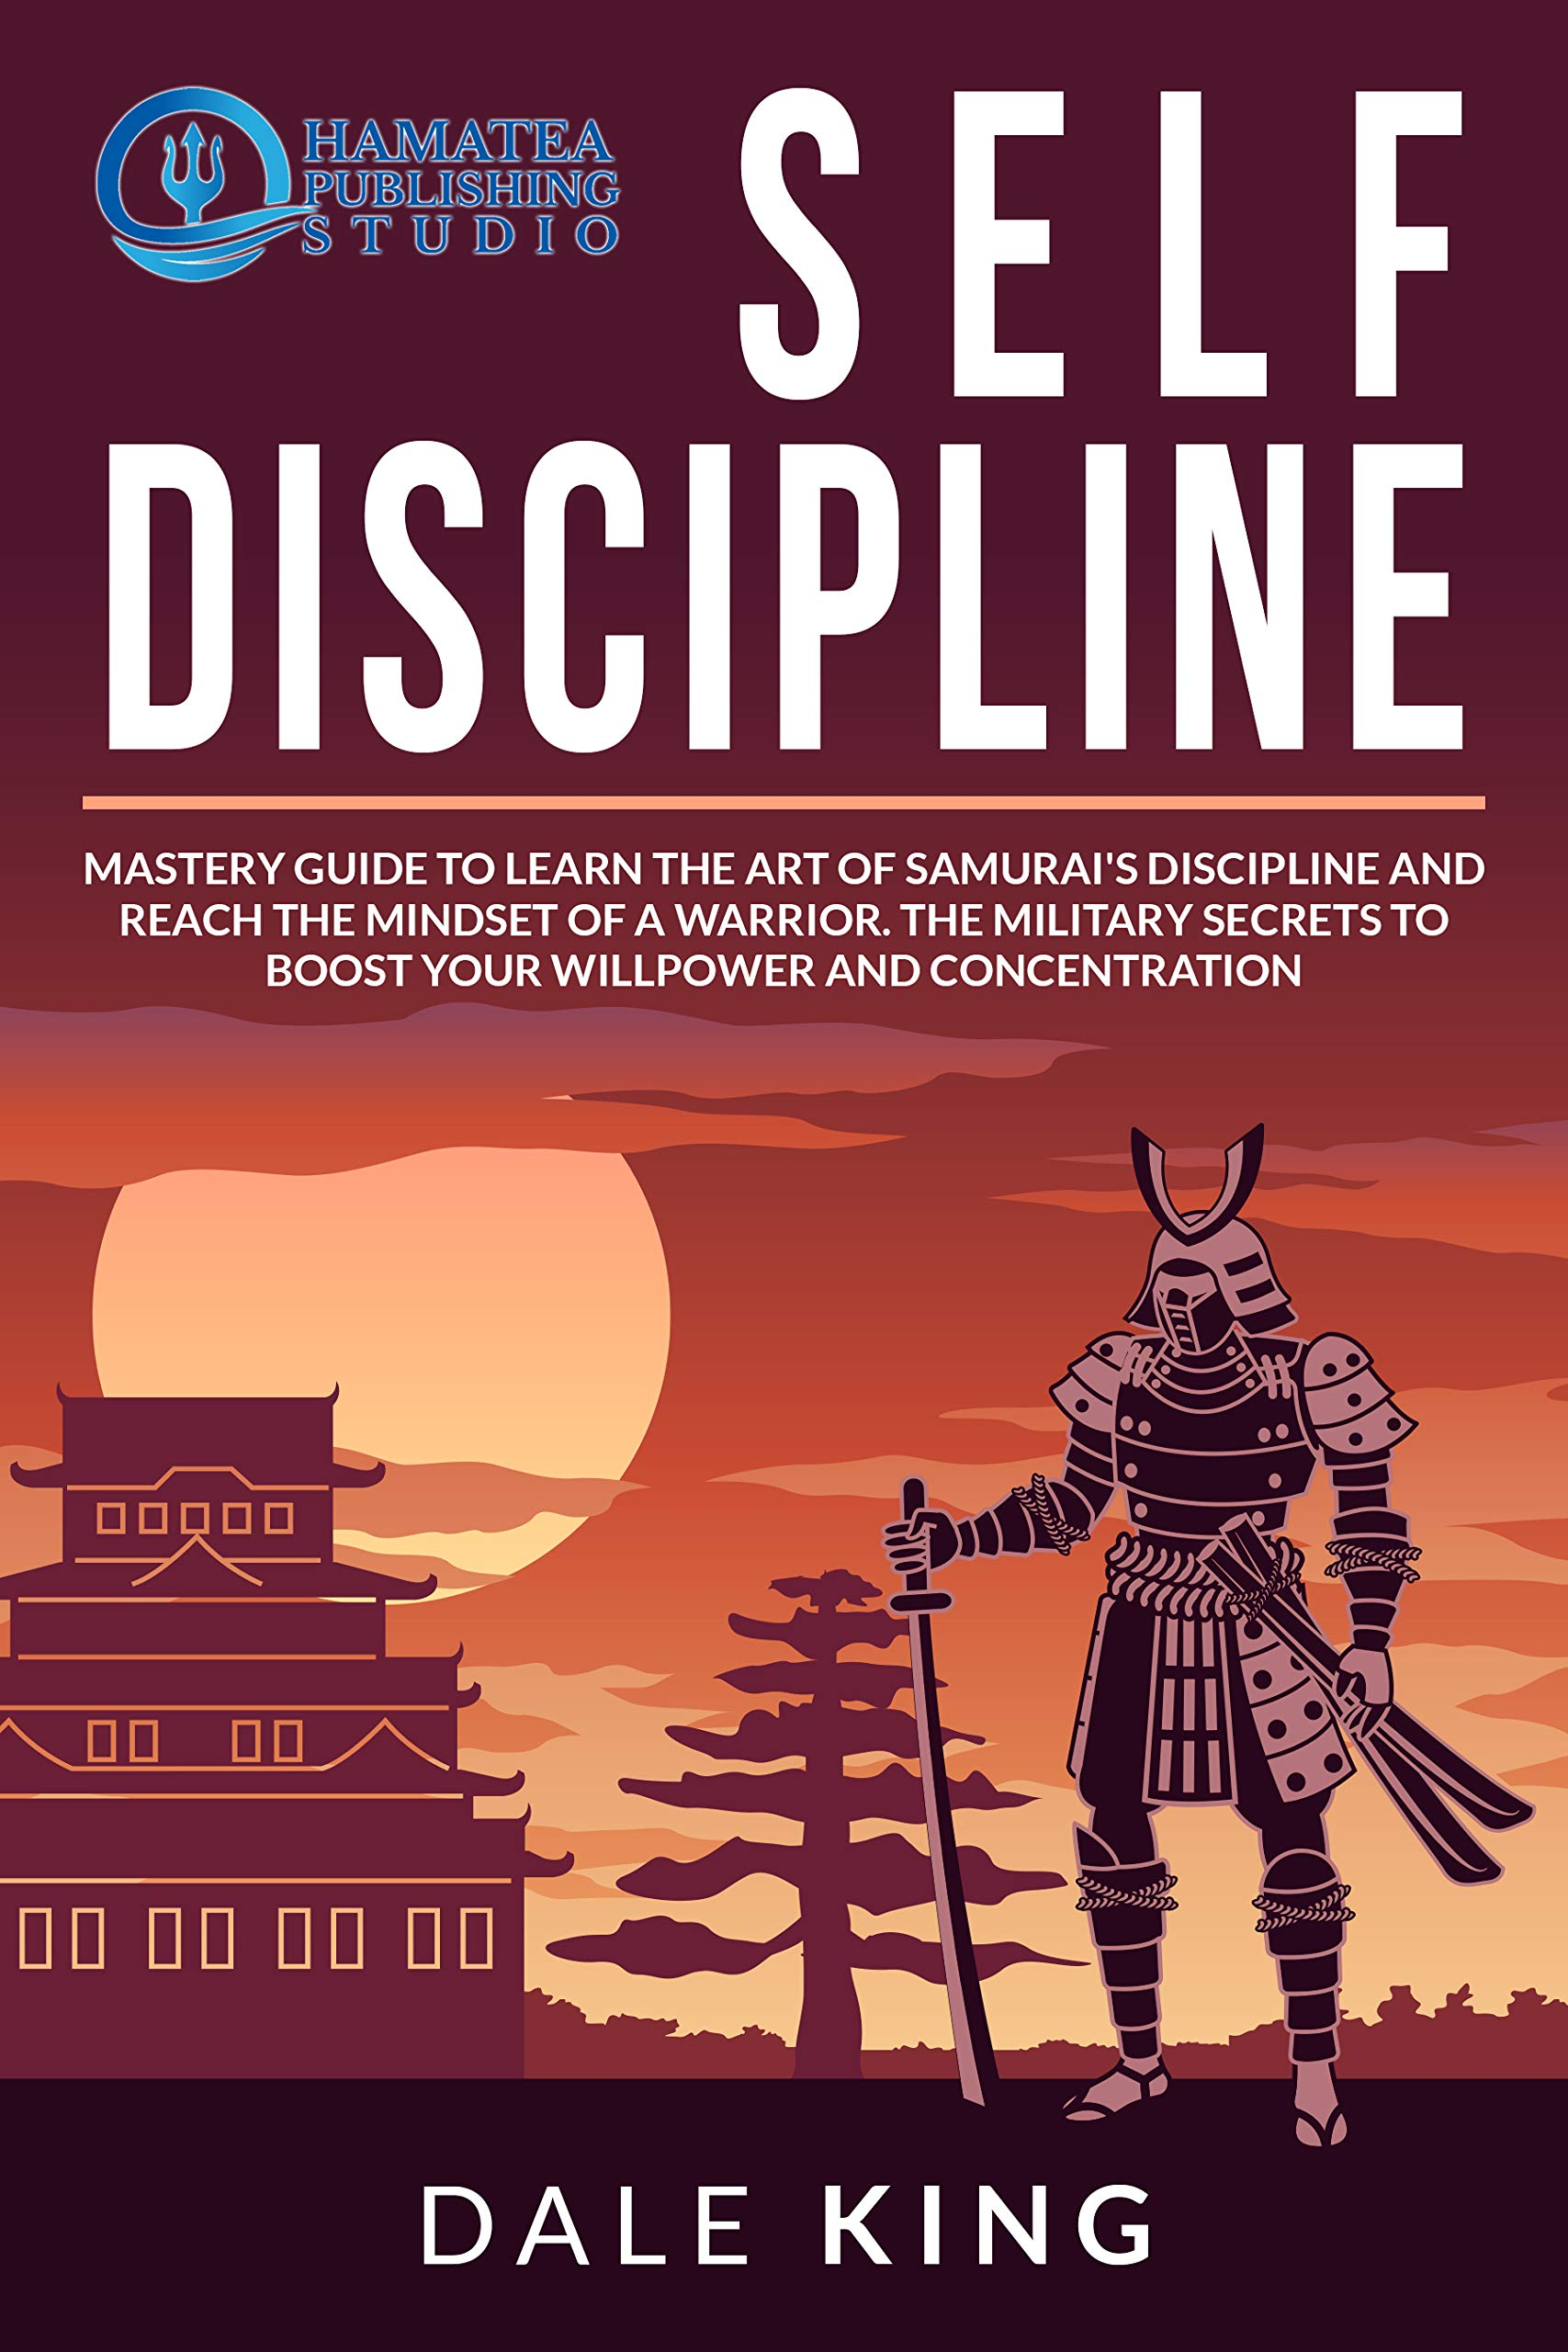 SELF-DISCIPLINE: Mastery Guide to Learn the Art of Samurai's Discipline and Reach the Mindset of a Warrior. The Military Secrets to Boost your Willpower and Concentration